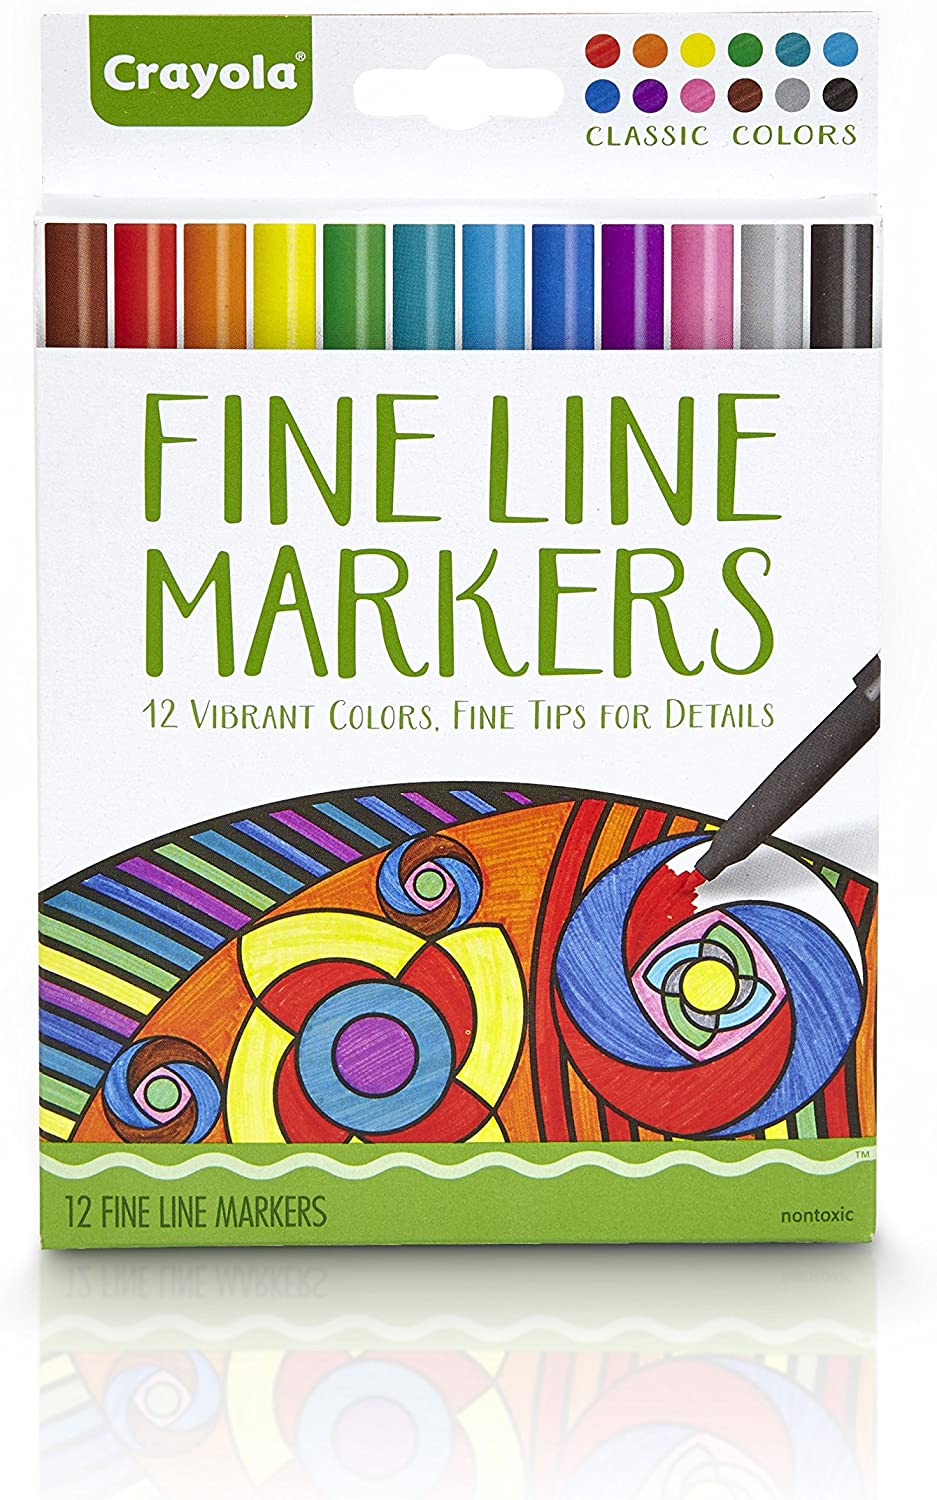 Crayola 58 7713 Fineline Markers 12 Vibrant Colors With Fine Tips